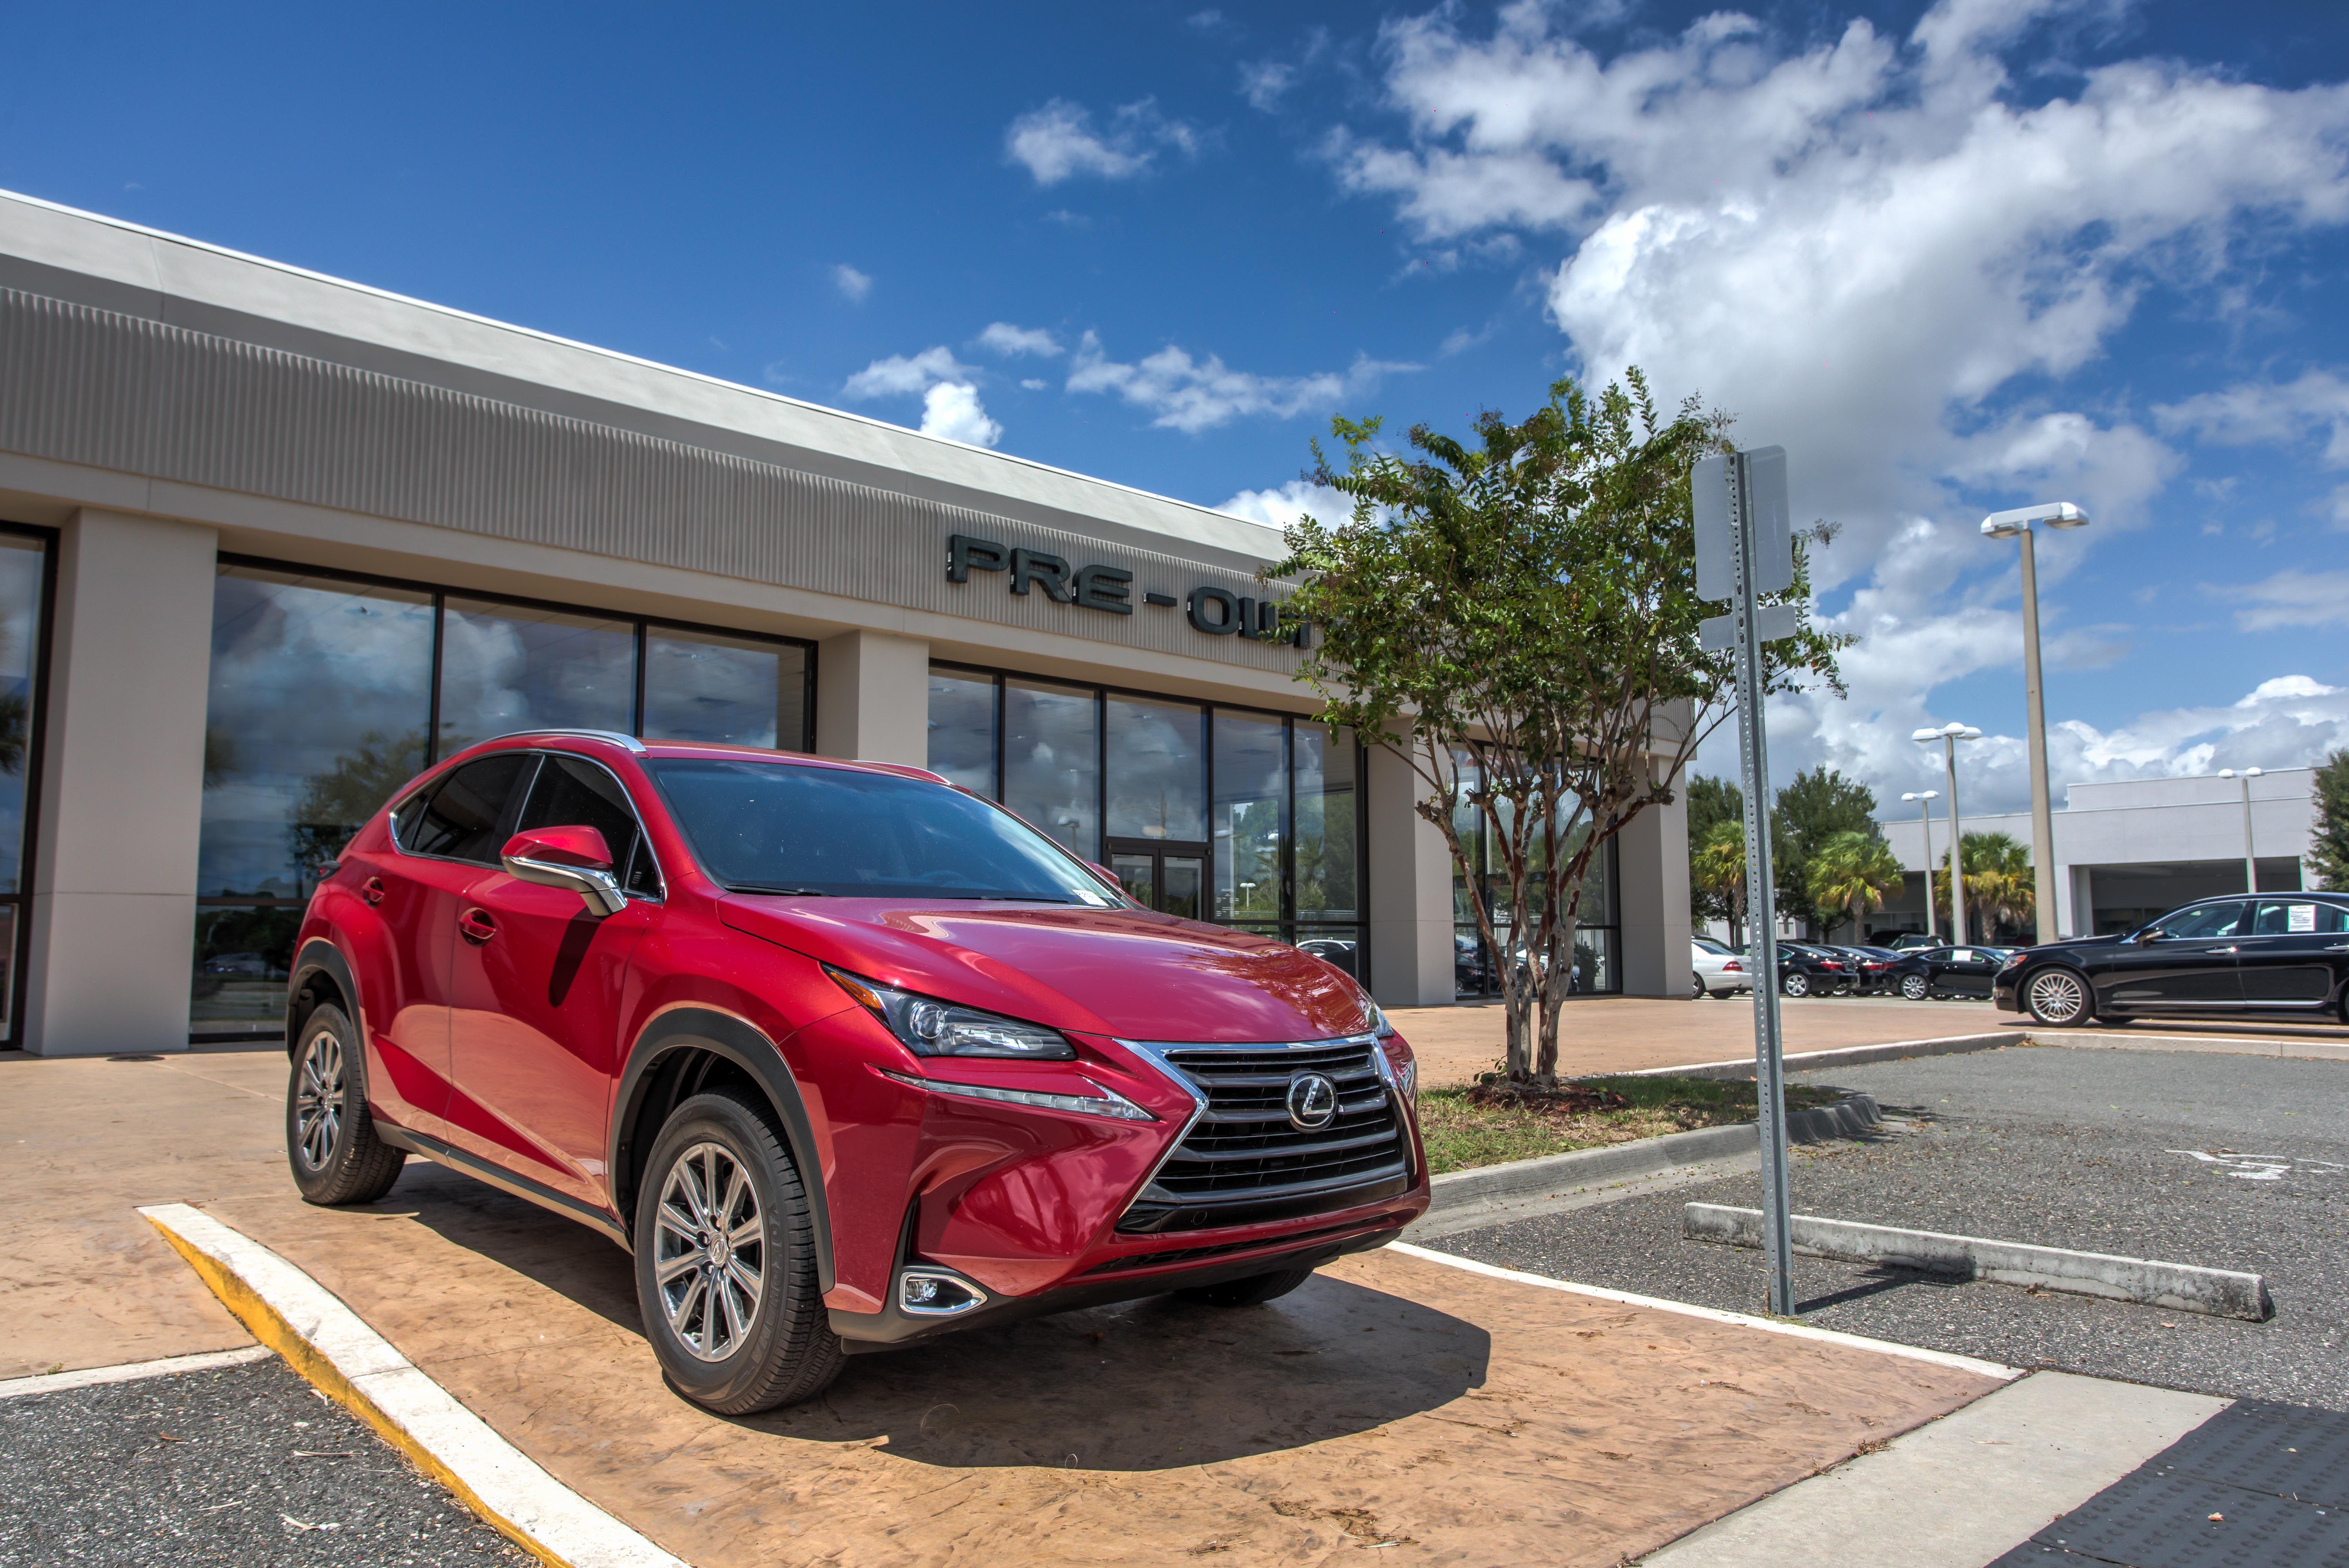 Our Mission Is To Make Every Customer A Customer For Life By Consistently Providing World Class Services Superb Customer Care Com New Lexus Orange Park Lexus